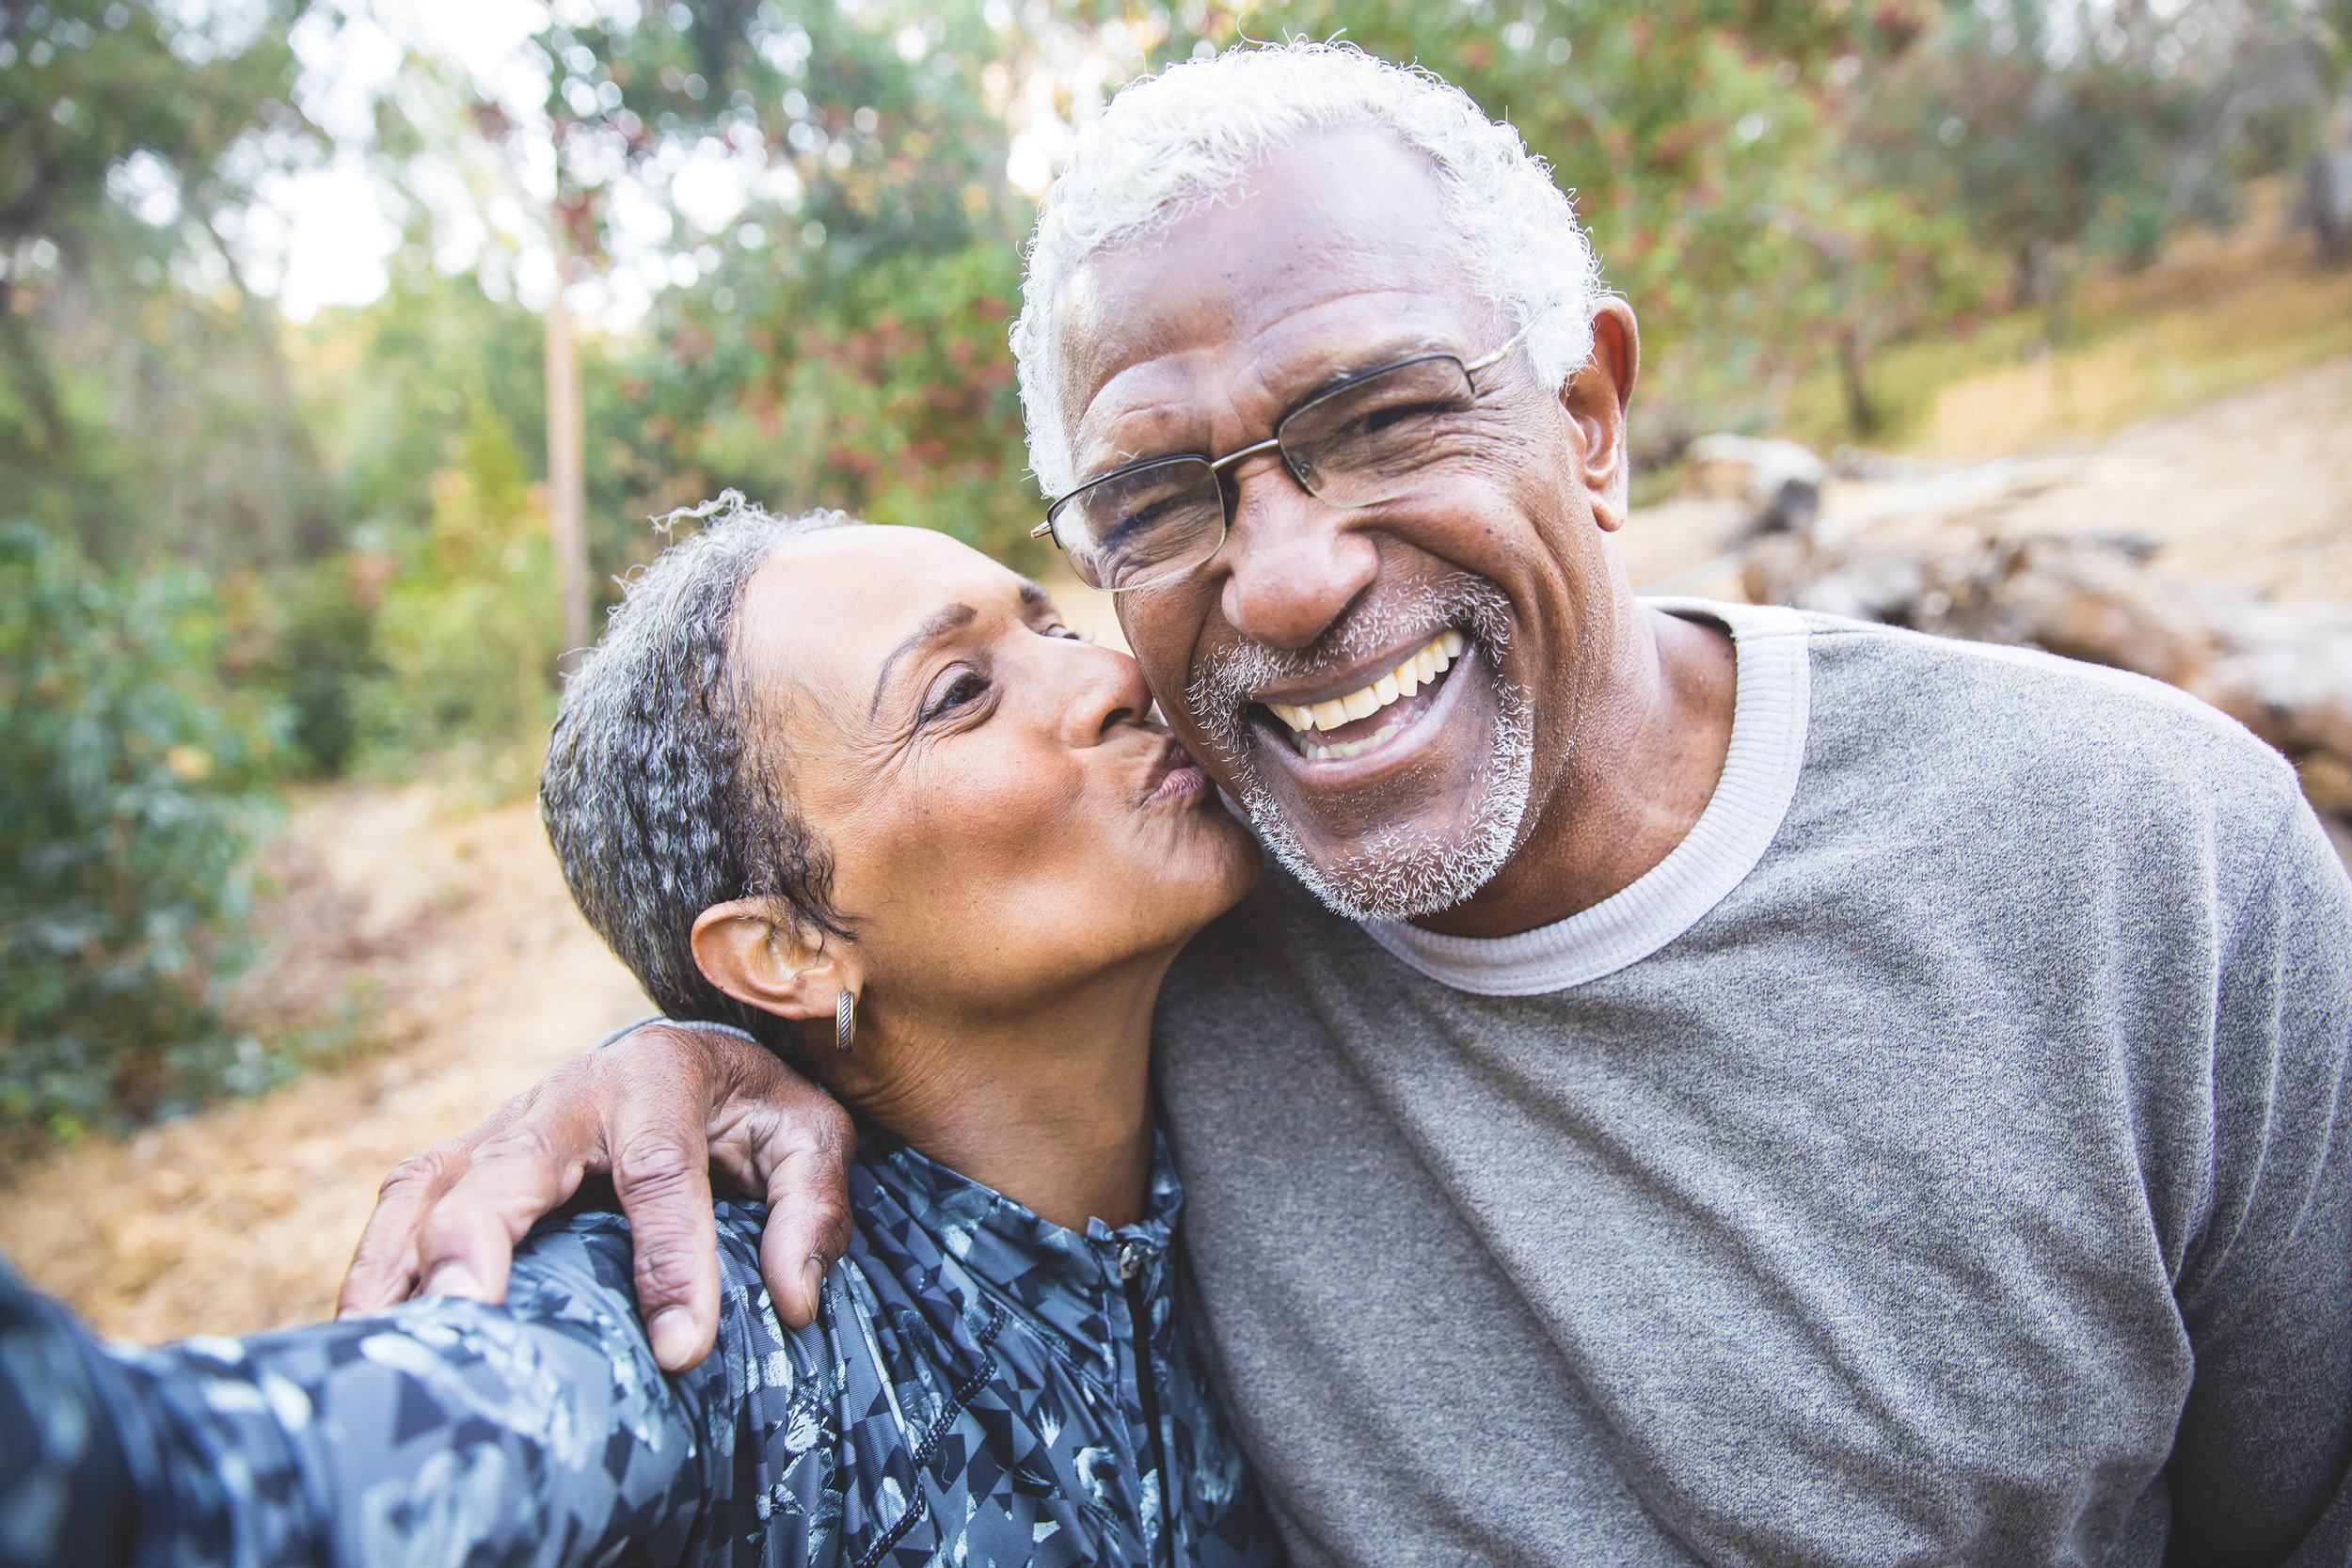 If a fixed annuity is appropriate for your situation, you may find it can join your other income pools – Social Security, 401(k), IRA, etc. – to provide you with the resources you need to enjoy the retirement lifestyle you've envisioned. (Photo: iStockphoto / NNPA)